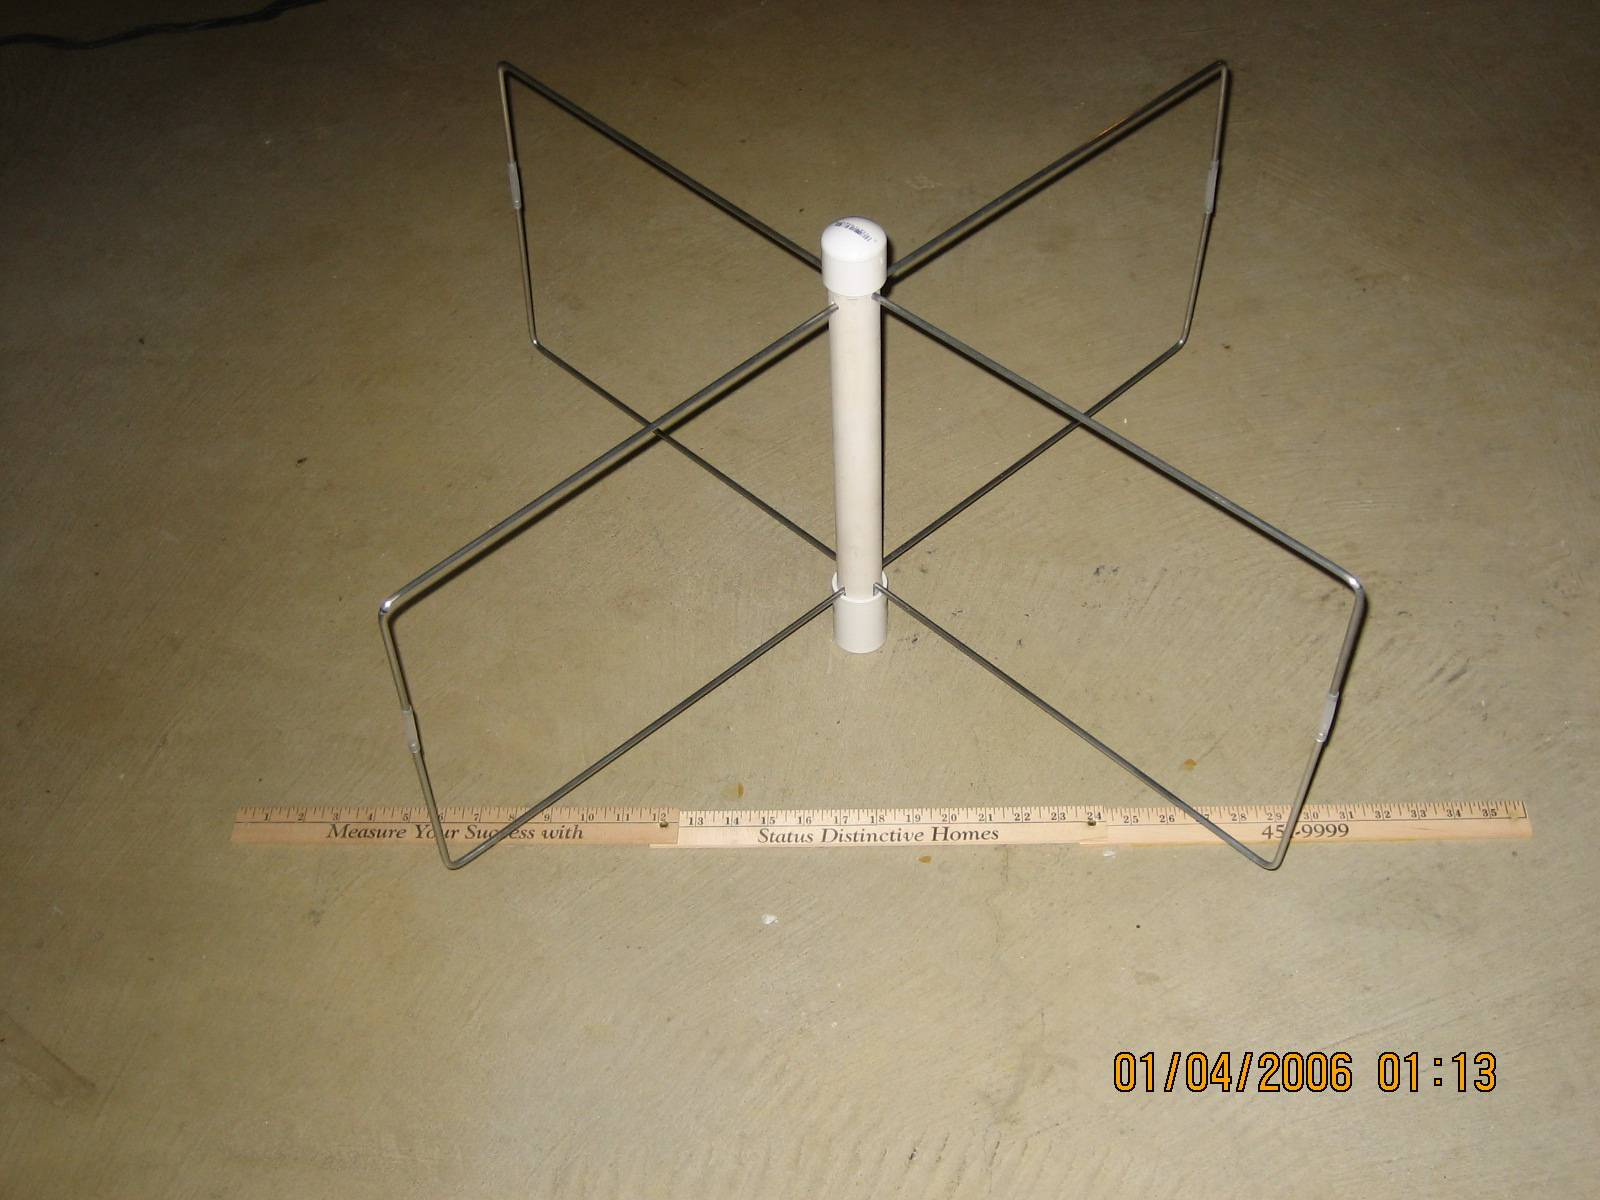 Images for mosley antennas